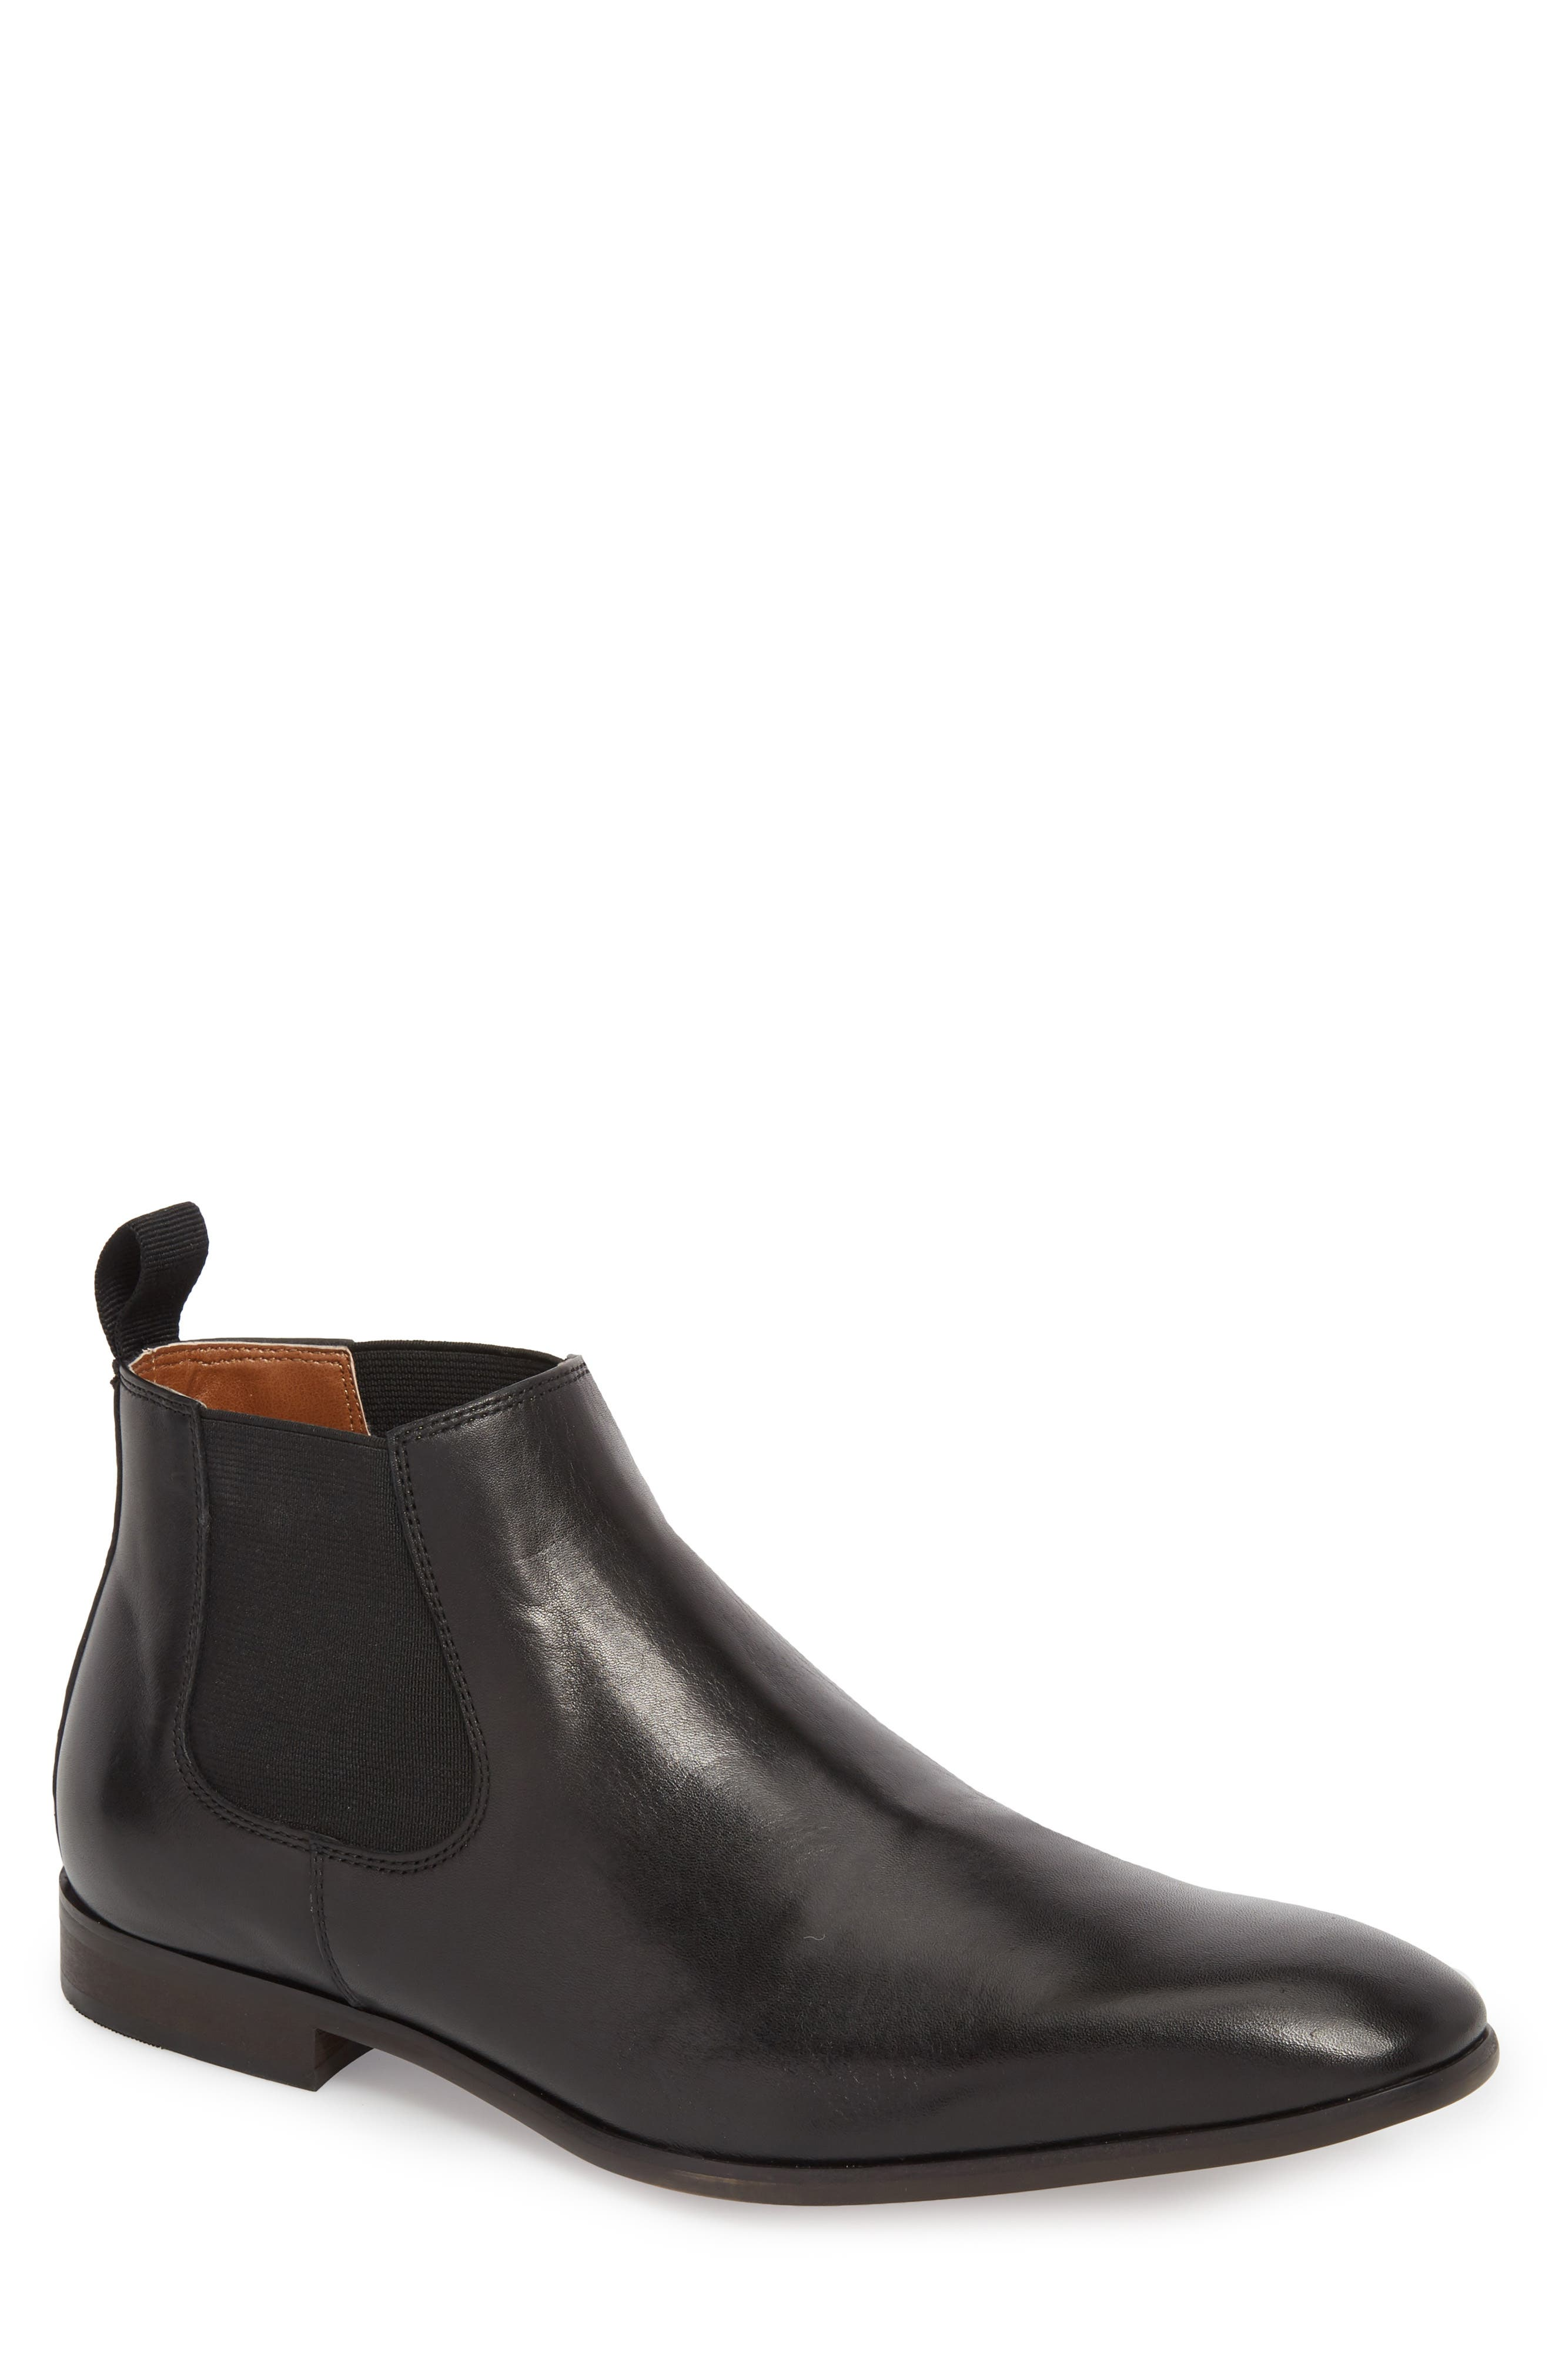 Edward Chelsea Boot,                         Main,                         color, BLACK LEATHER